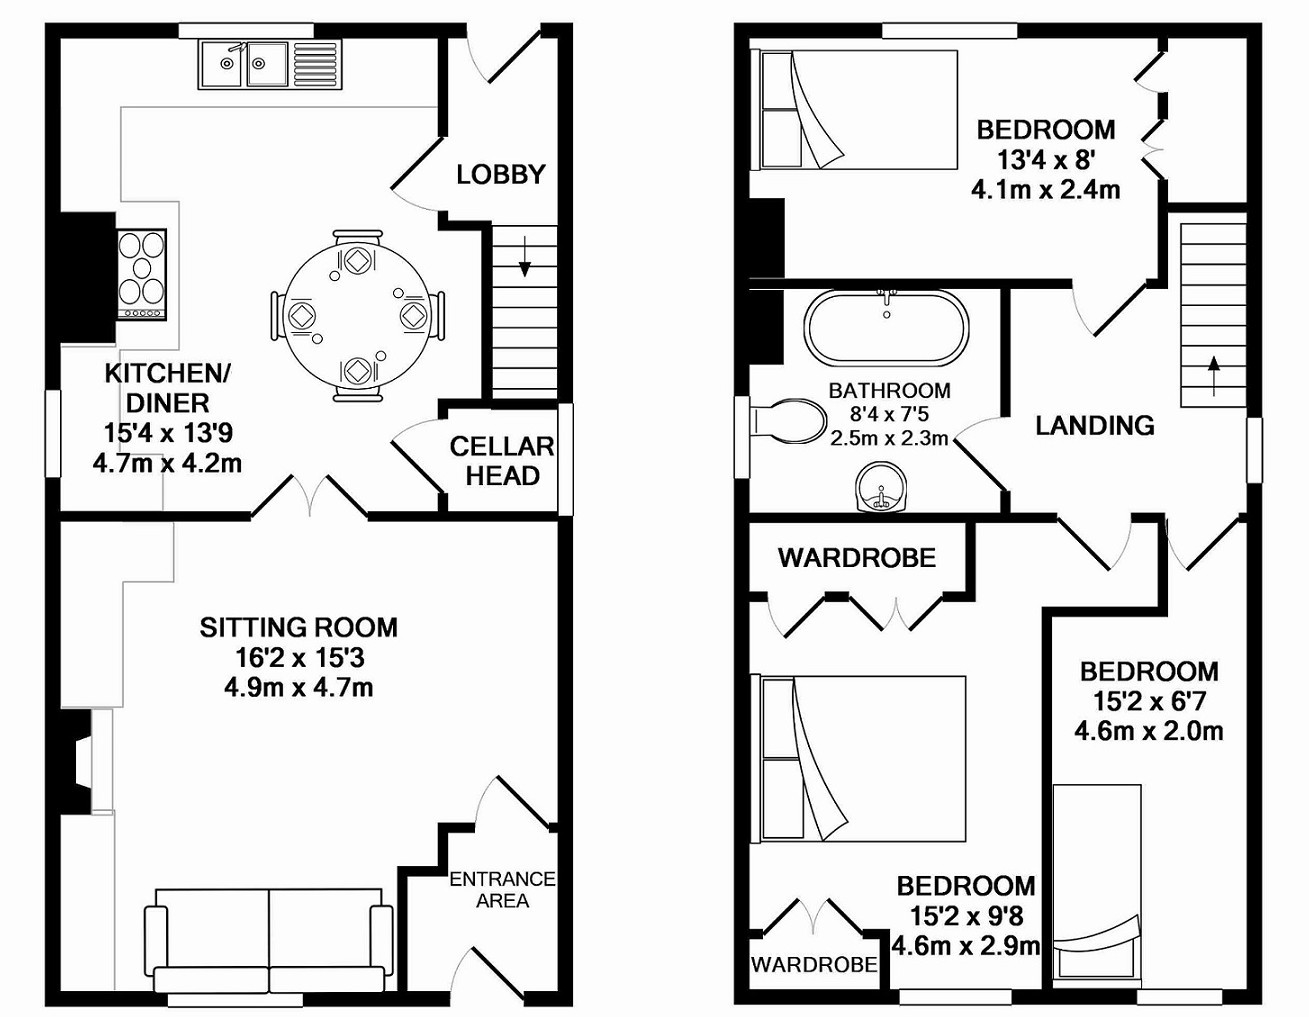 Professional Floor Plans From 50 Vat The Landlord Shop